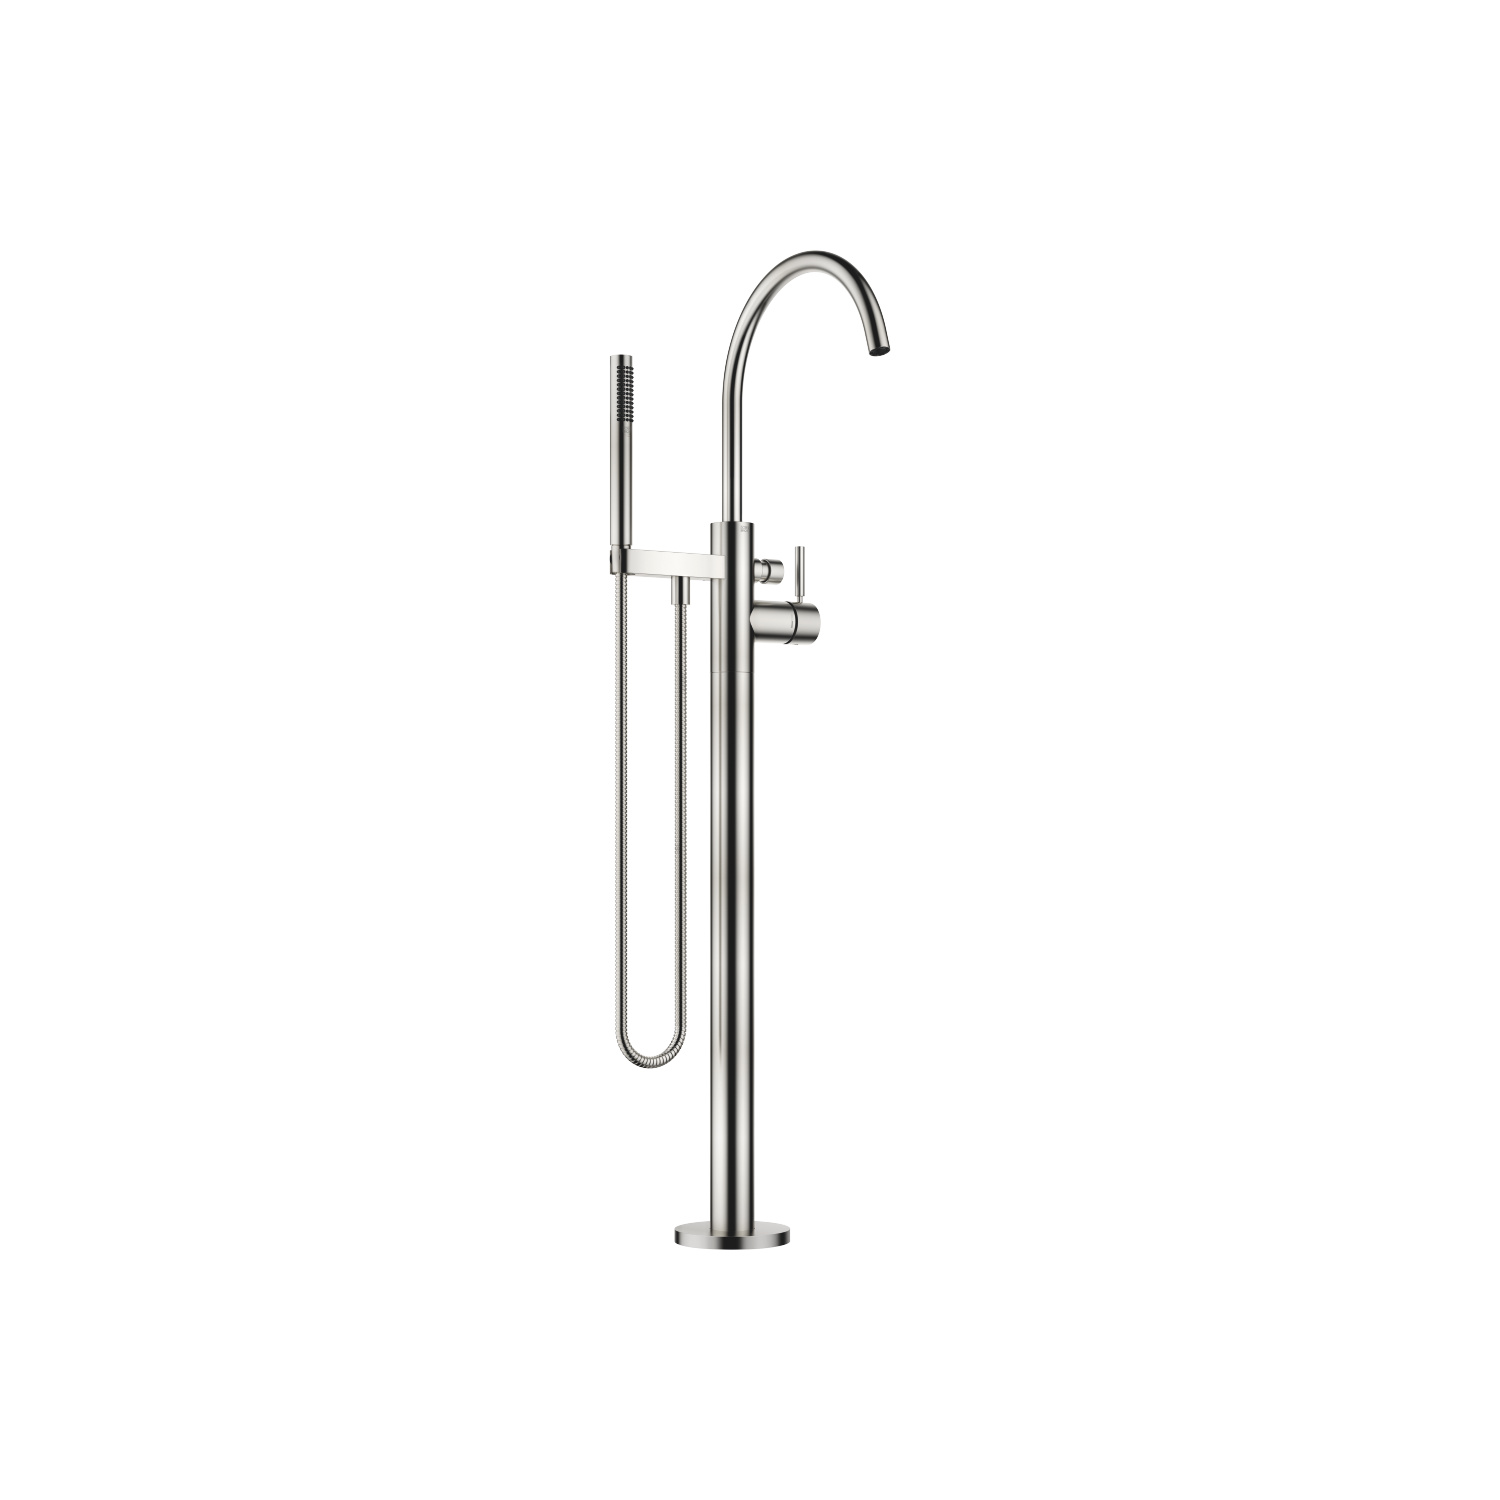 Single-lever bath mixer with stand pipe for free-standing assembly with hand shower set - platinum matt